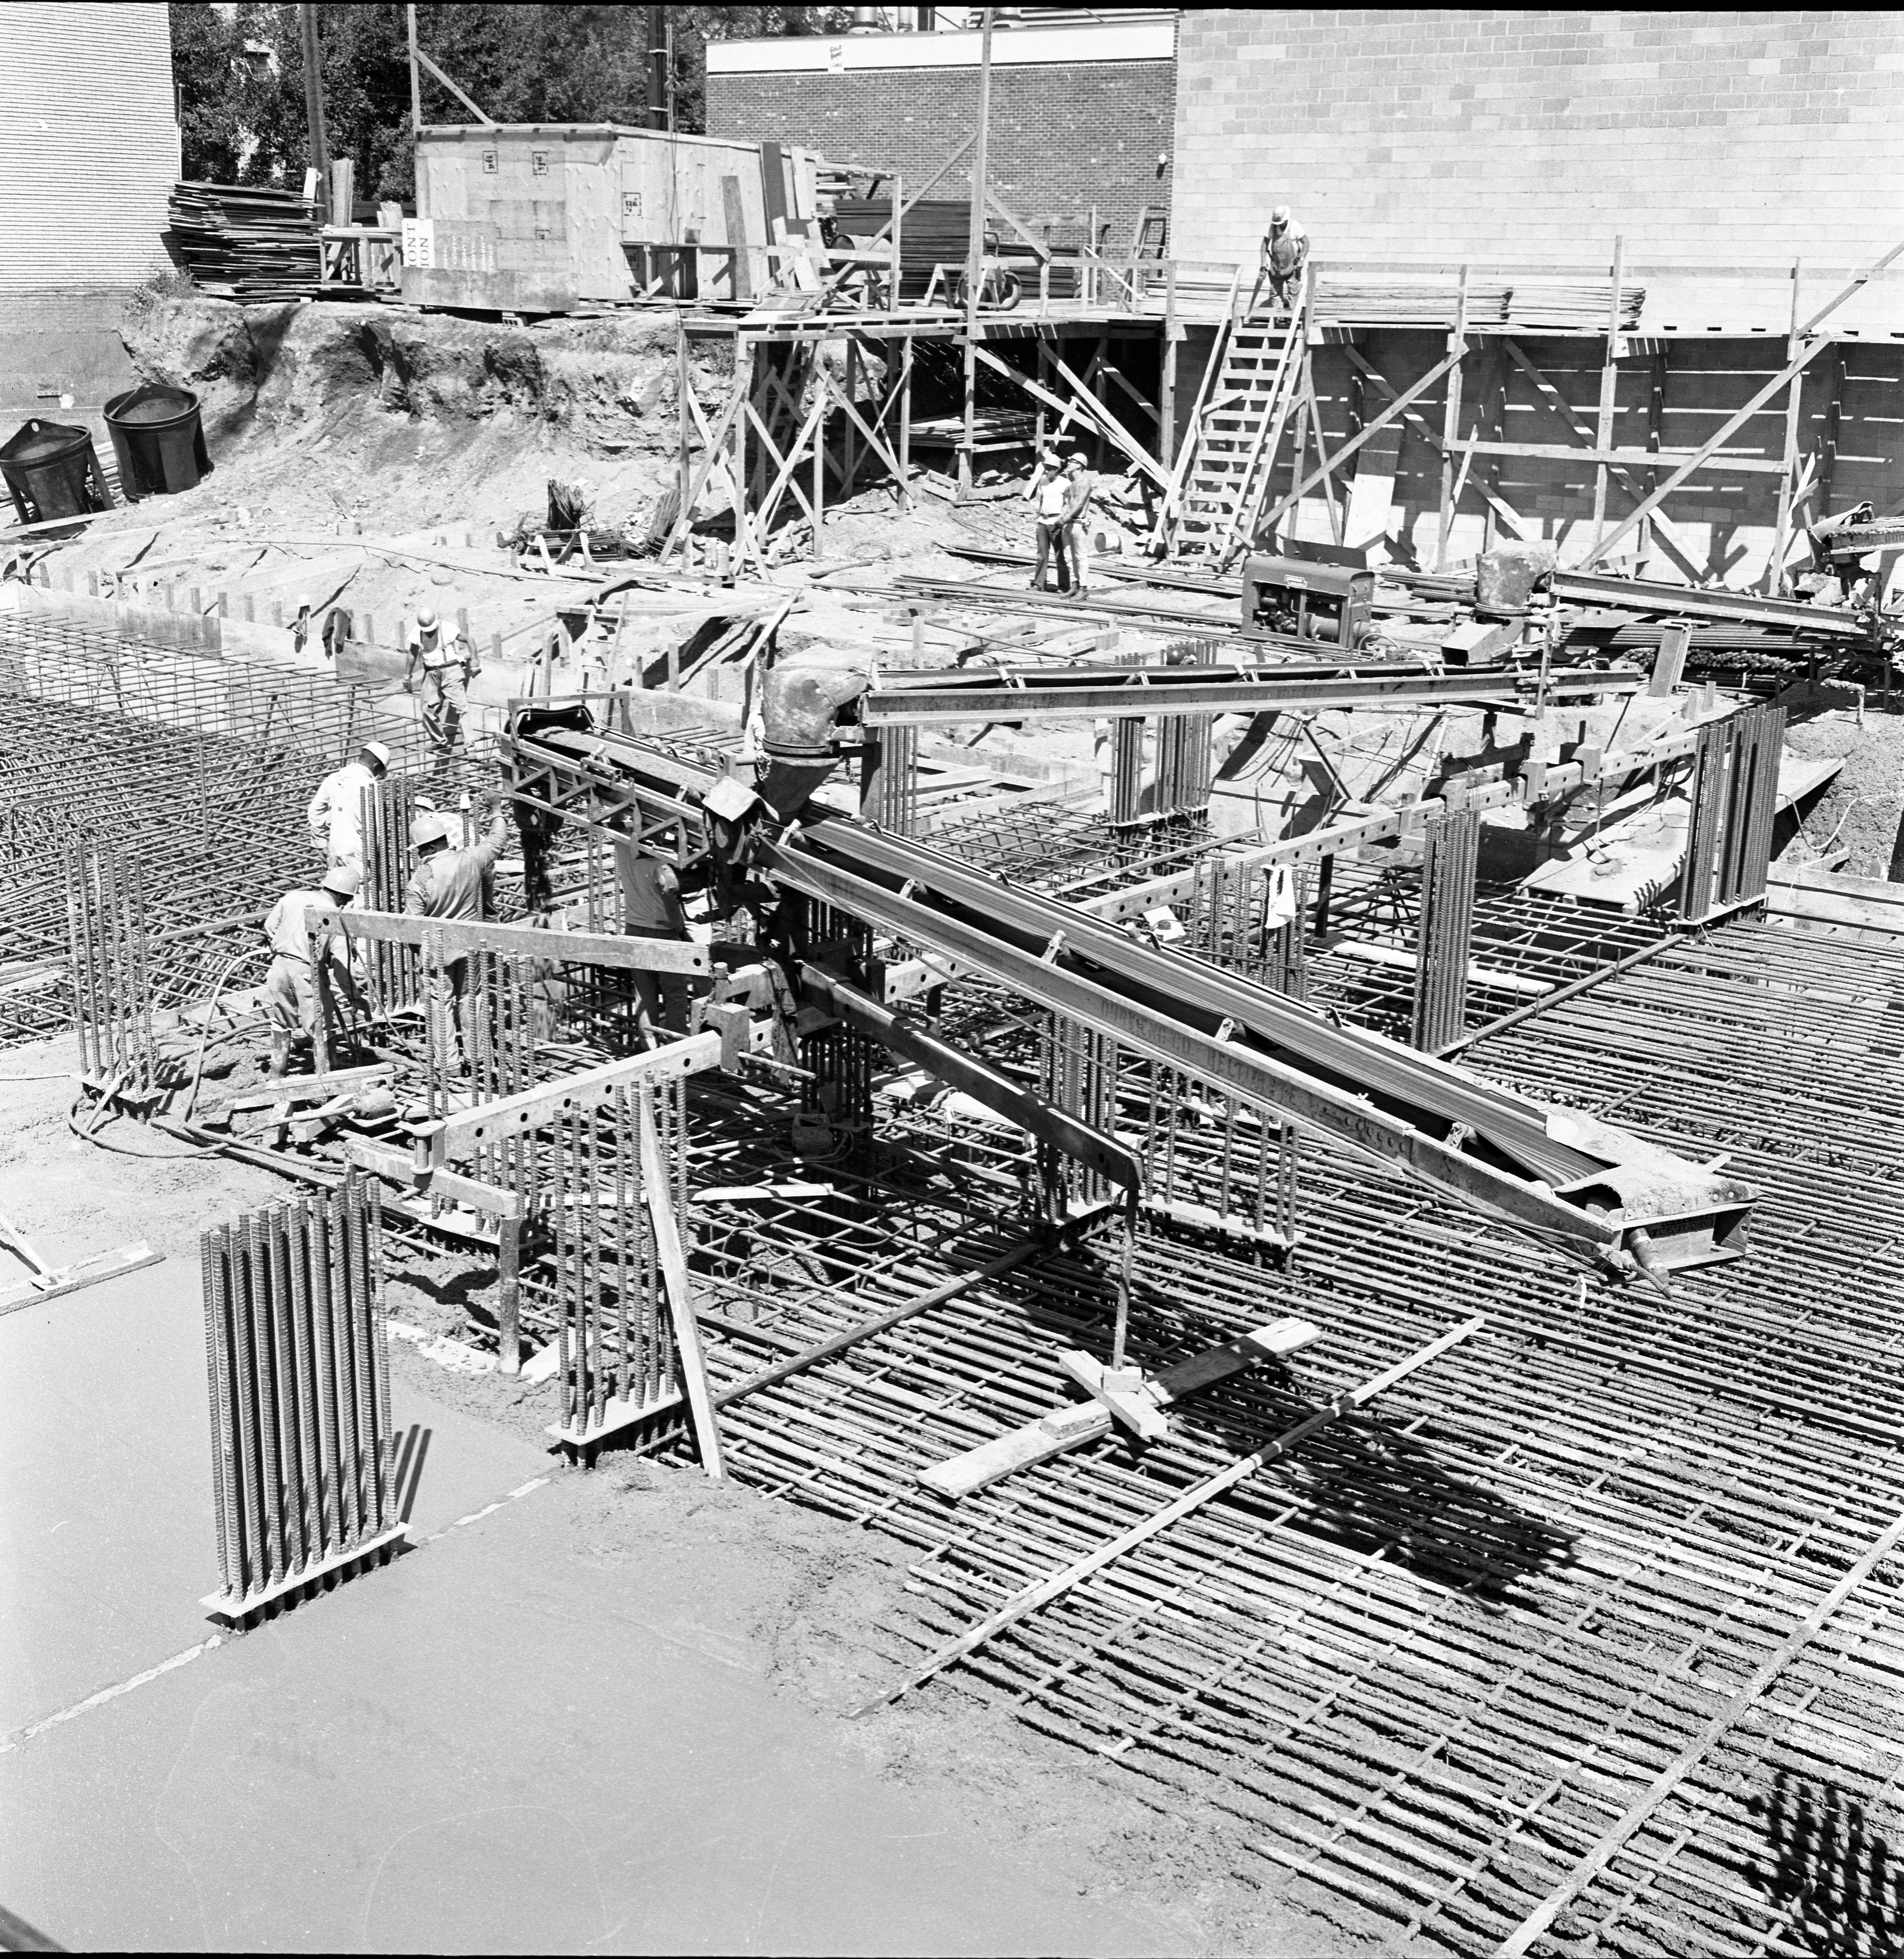 Concrete Being Poured For Tower Plaza Footings, August 1966 image